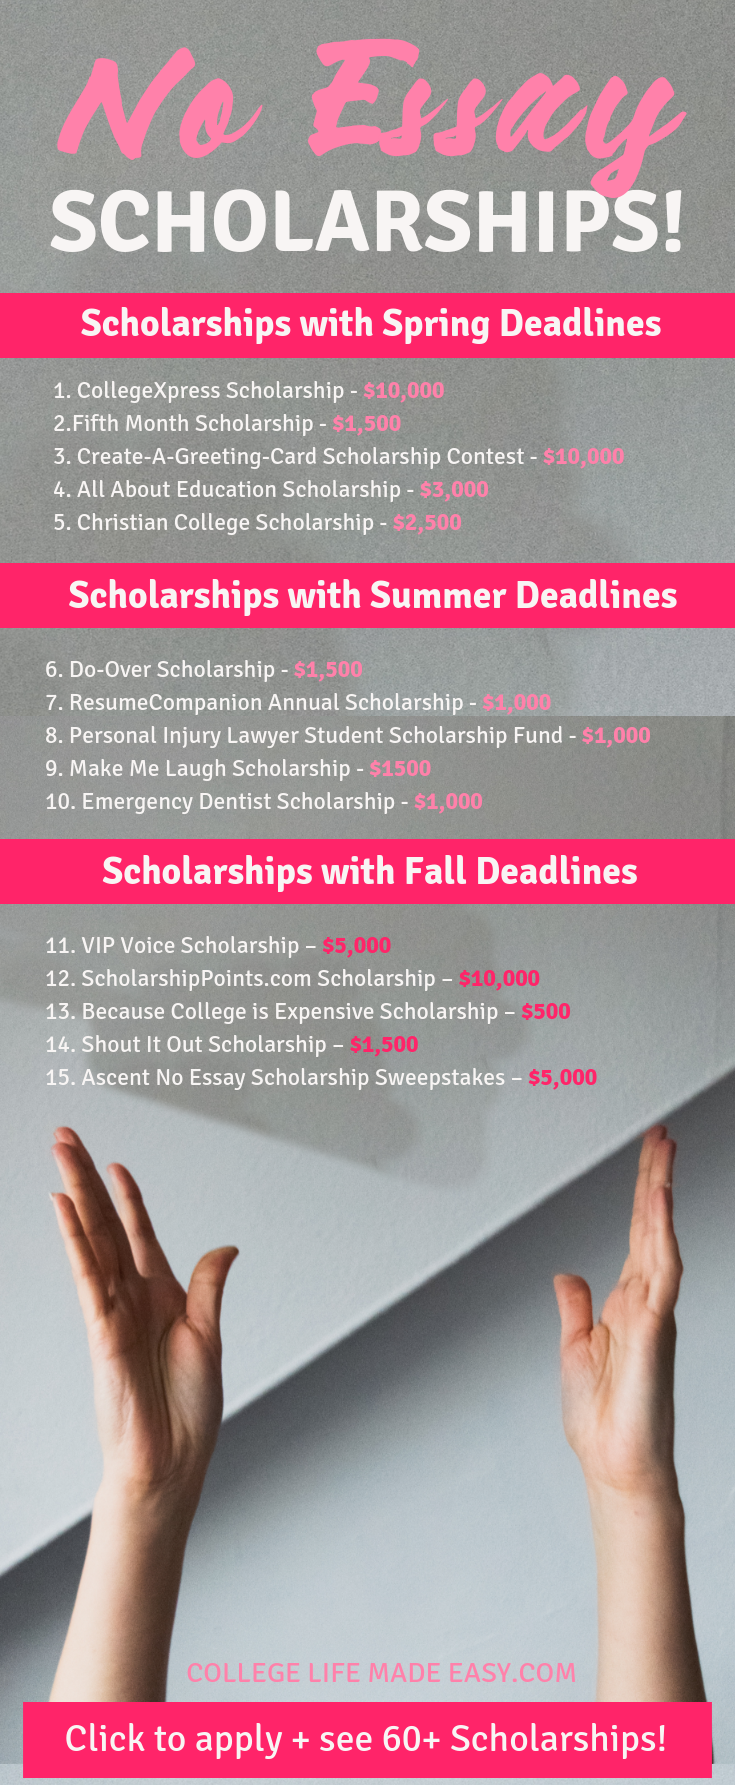 012 Essay Example Scholarships With Unbelievable No Without Requirements Essays Required College Full